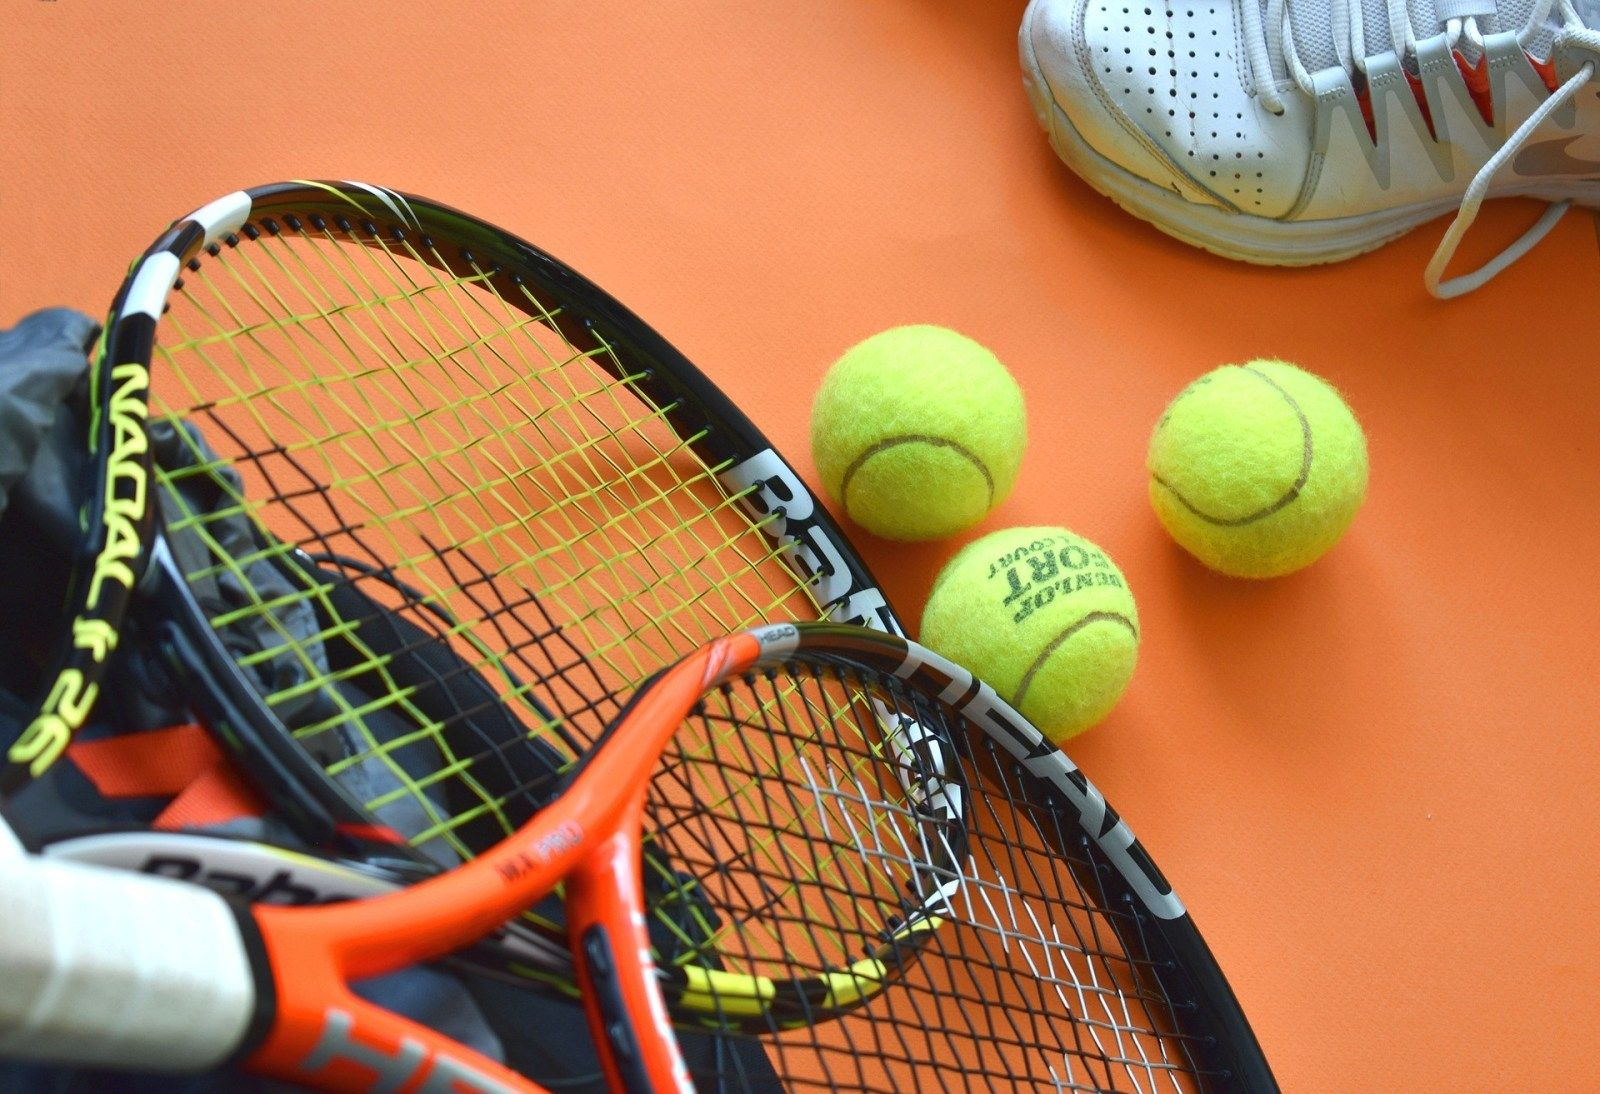 Best Tennis Ball Machine In 2020 Review And Guide With Images